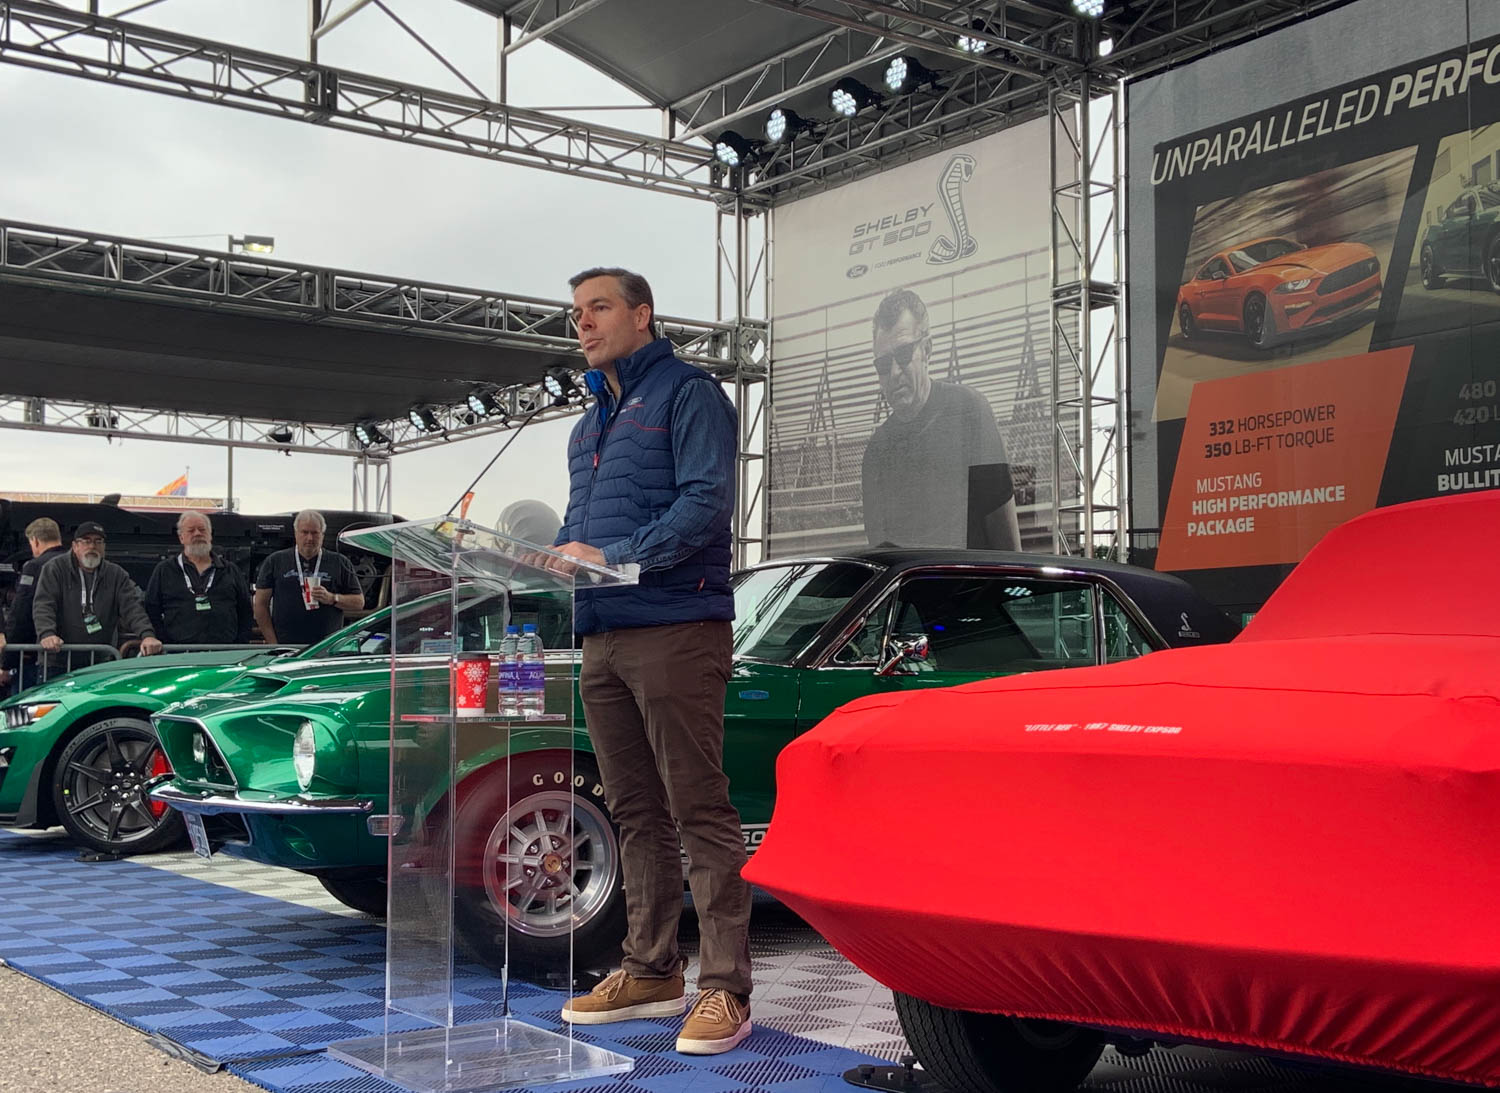 Aaron Shelby, grandson of Carroll Shelby, speaks to the crowd at Thursday's unveiling of the restored Little Red.